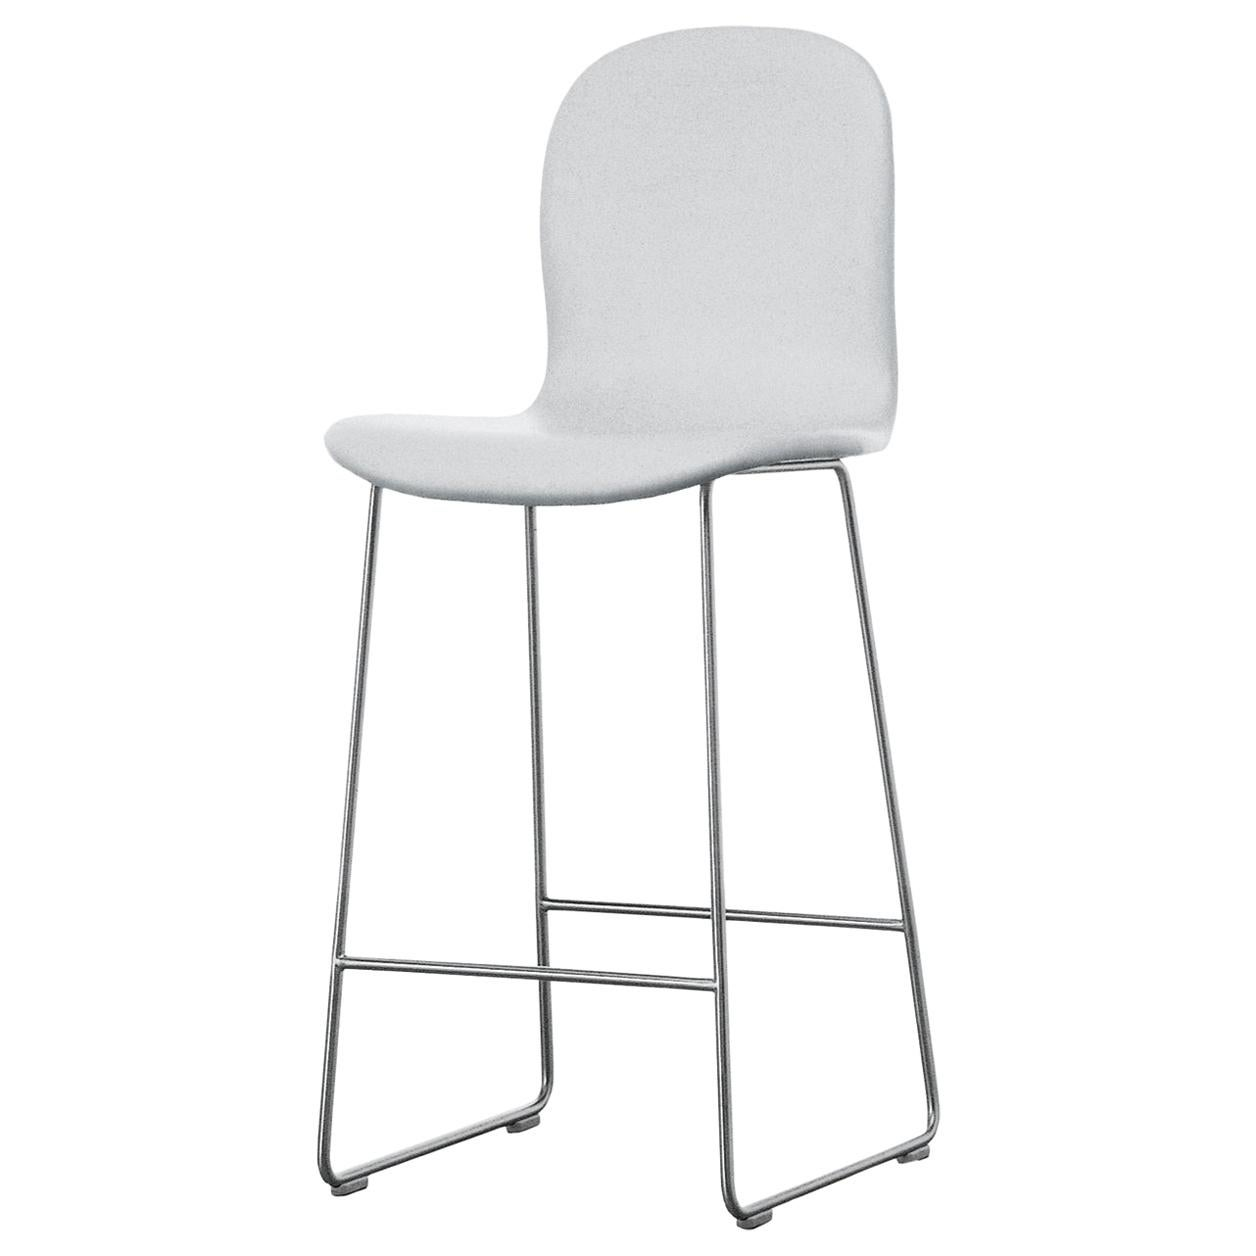 Jasper Morrison Tate Stool Upholstered in Fabric or Leather for Cappellini